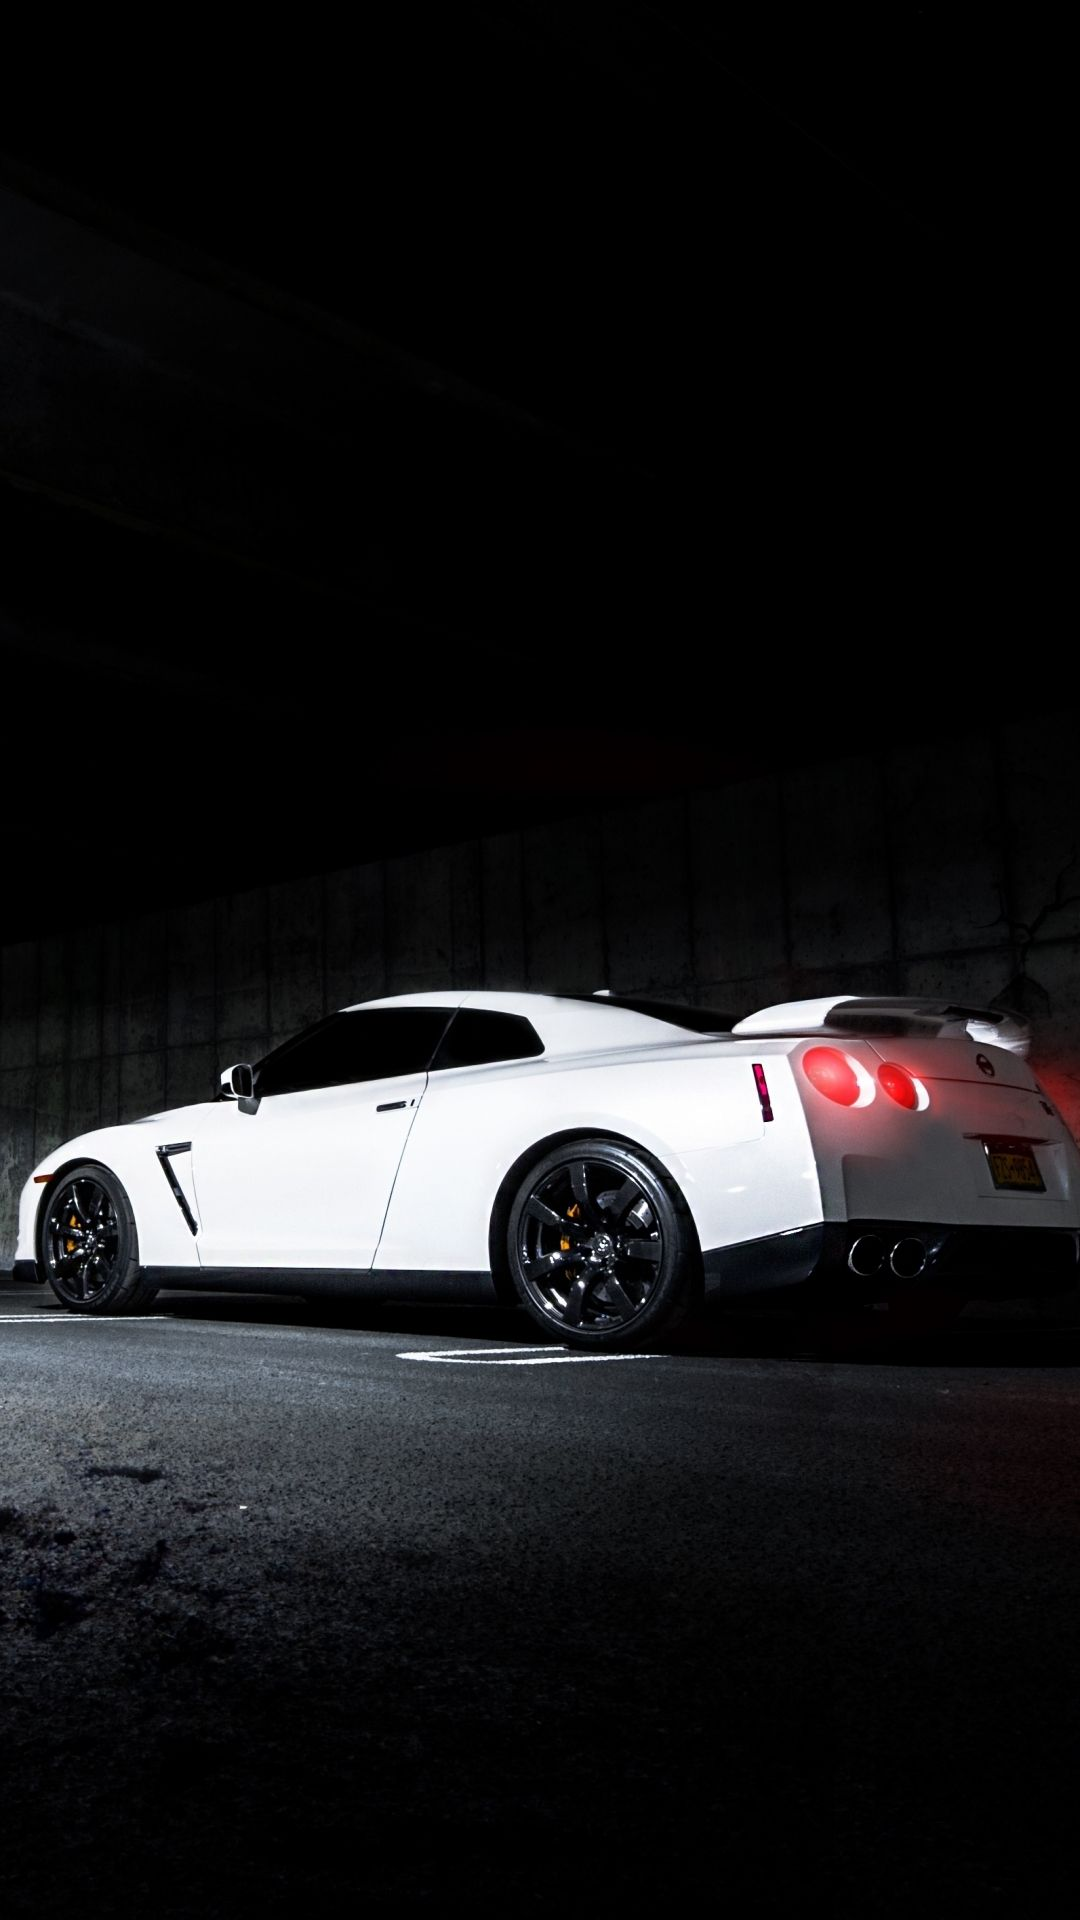 Nissan Gtr Appleiphone Plus X Wallpapers My Cars Pinterest